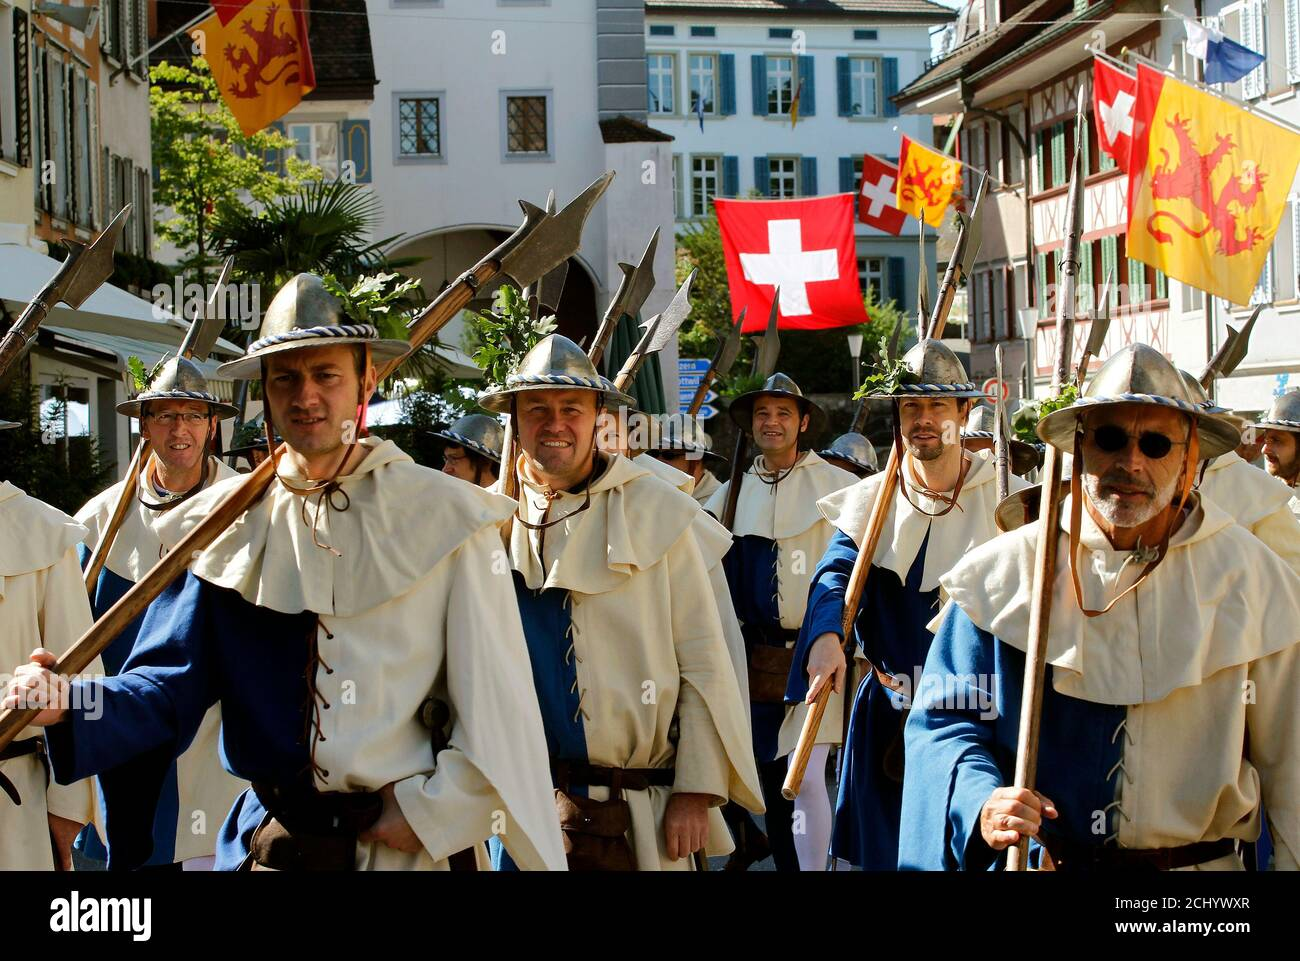 Medieval dressed participants carry halberds as they parade during the commemoration of the Battle of Sempach in the town of Sempach near Lucerne July 3, 2011. The battle was fought on July 9, 1386, a decisive victory won by the Swiss Confederation in its struggle with the Austrian Habsburgs.    REUTERS/Arnd Wiegmann (SWITZERLAND - Tags: ENTERTAINMENT) Stock Photo